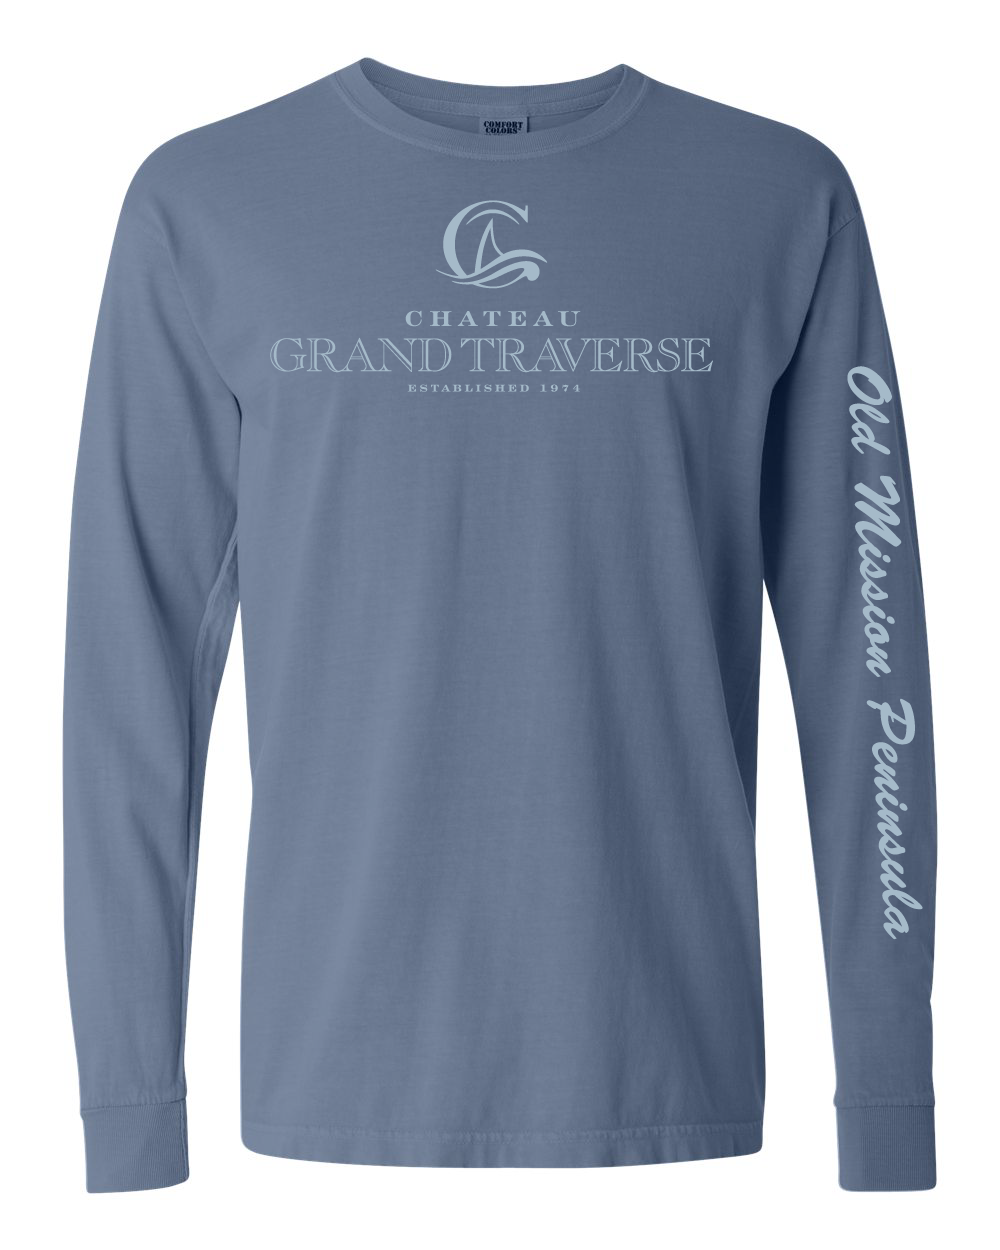 CGT Classic Long Sleeve Tee- Blue